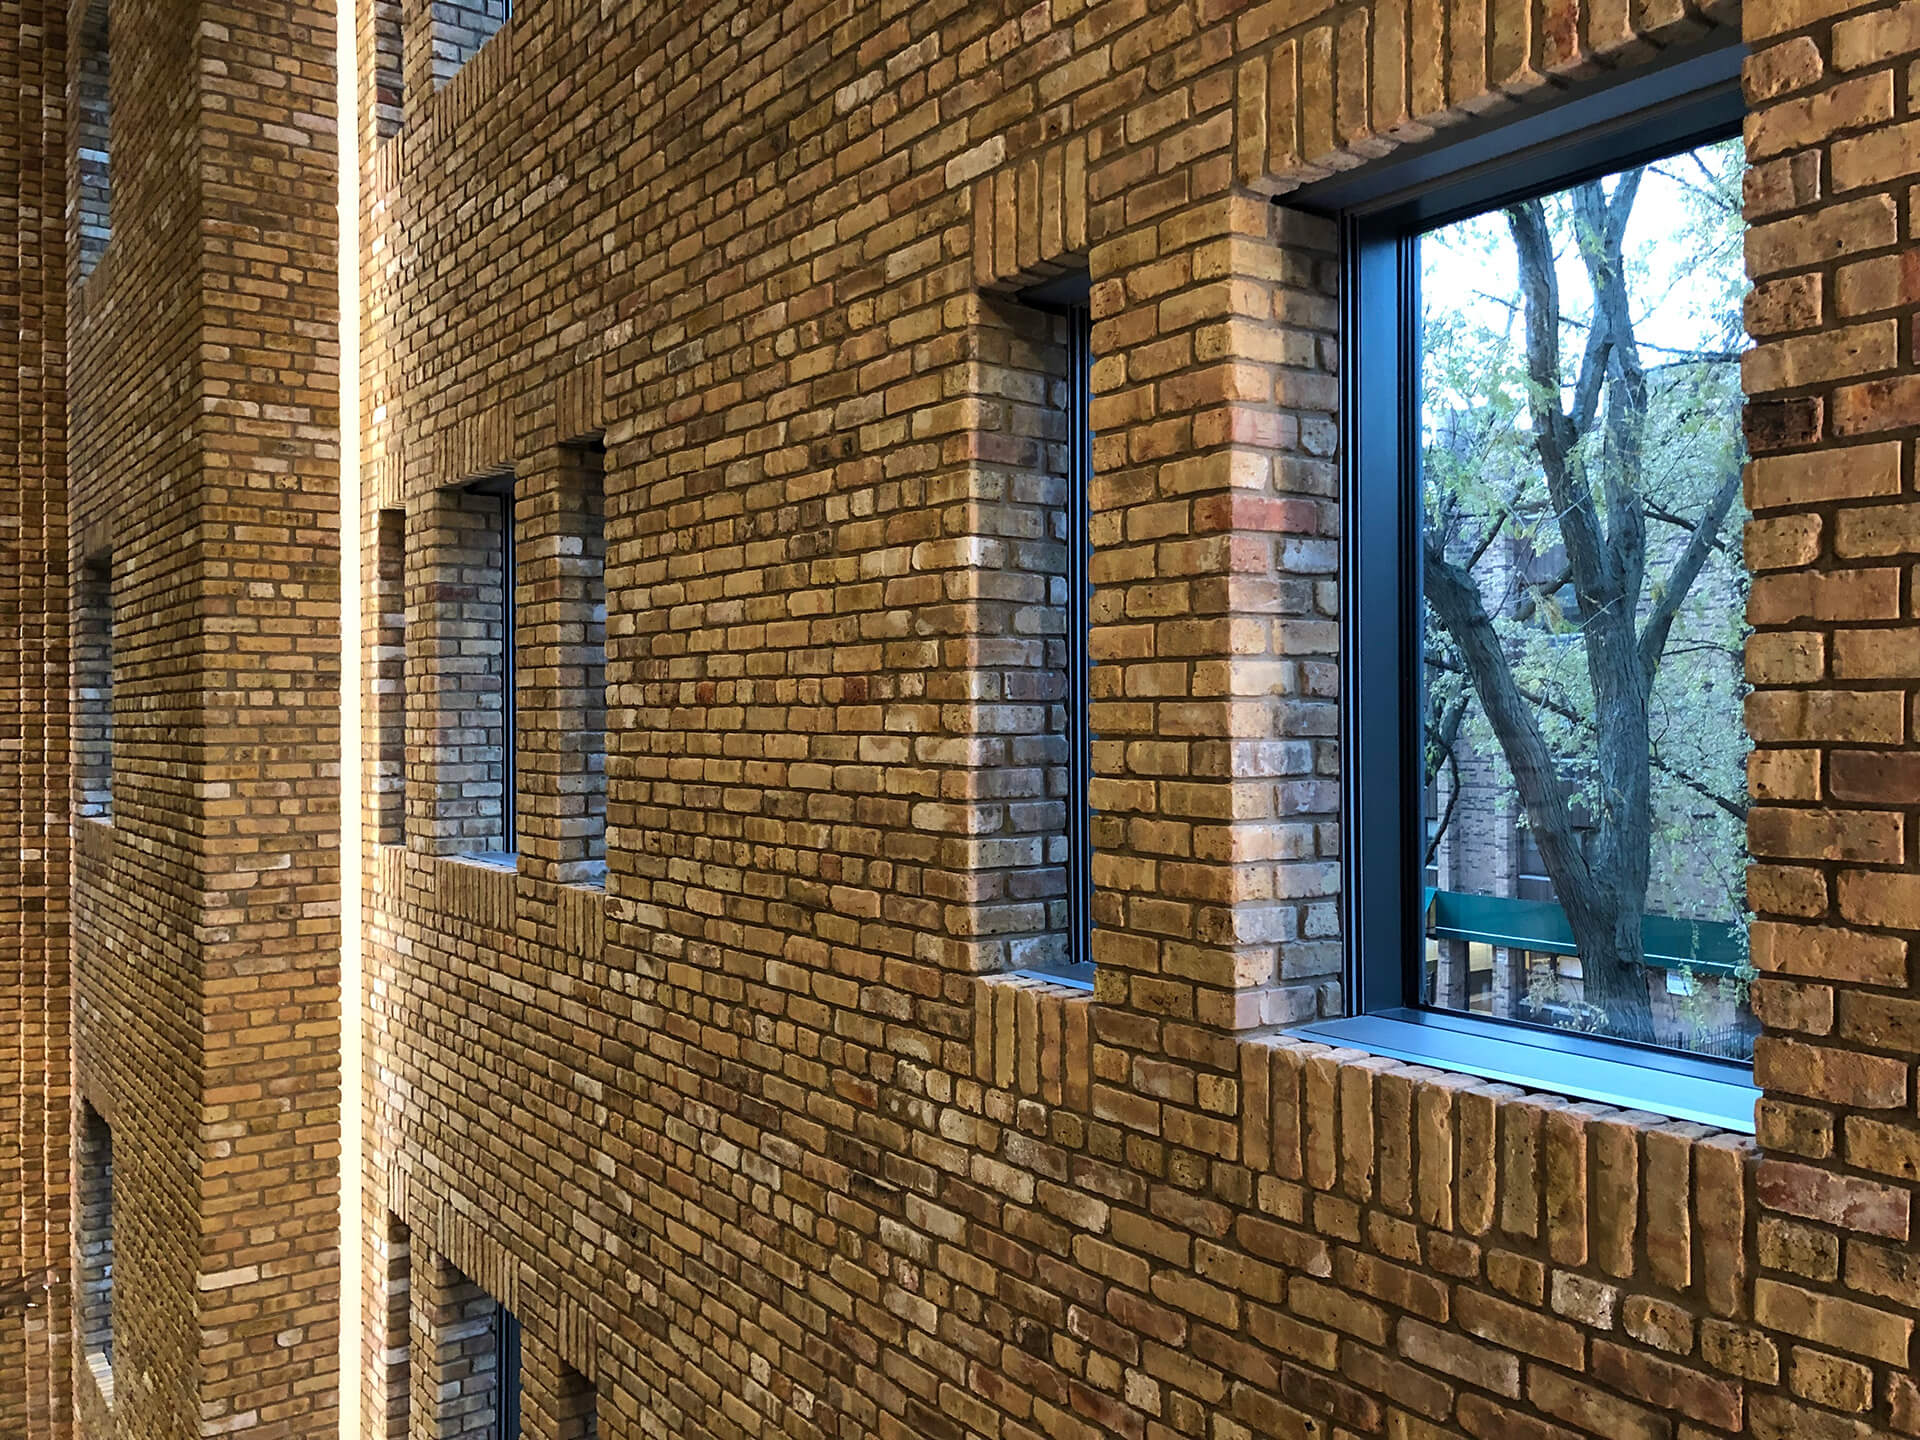 Tadao Ando transformed the building using more brickwork along with concrete surfaces | Wrightwood 659 | Tadao Ando | STIRworld